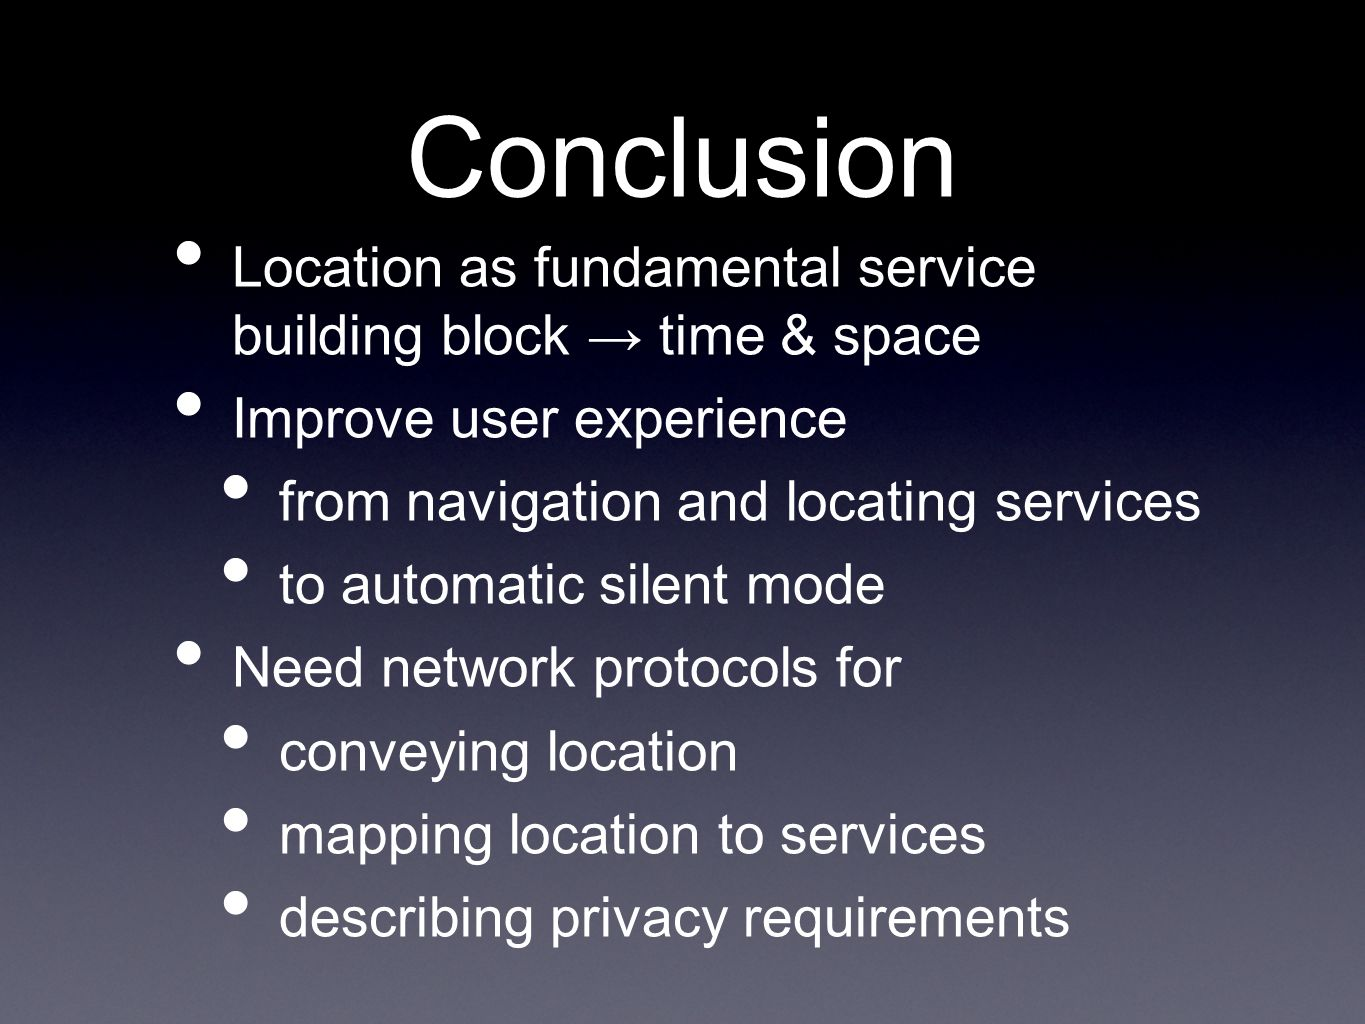 Conclusion Location as fundamental service building block time & space Improve user experience from navigation and locating services to automatic silent mode Need network protocols for conveying location mapping location to services describing privacy requirements